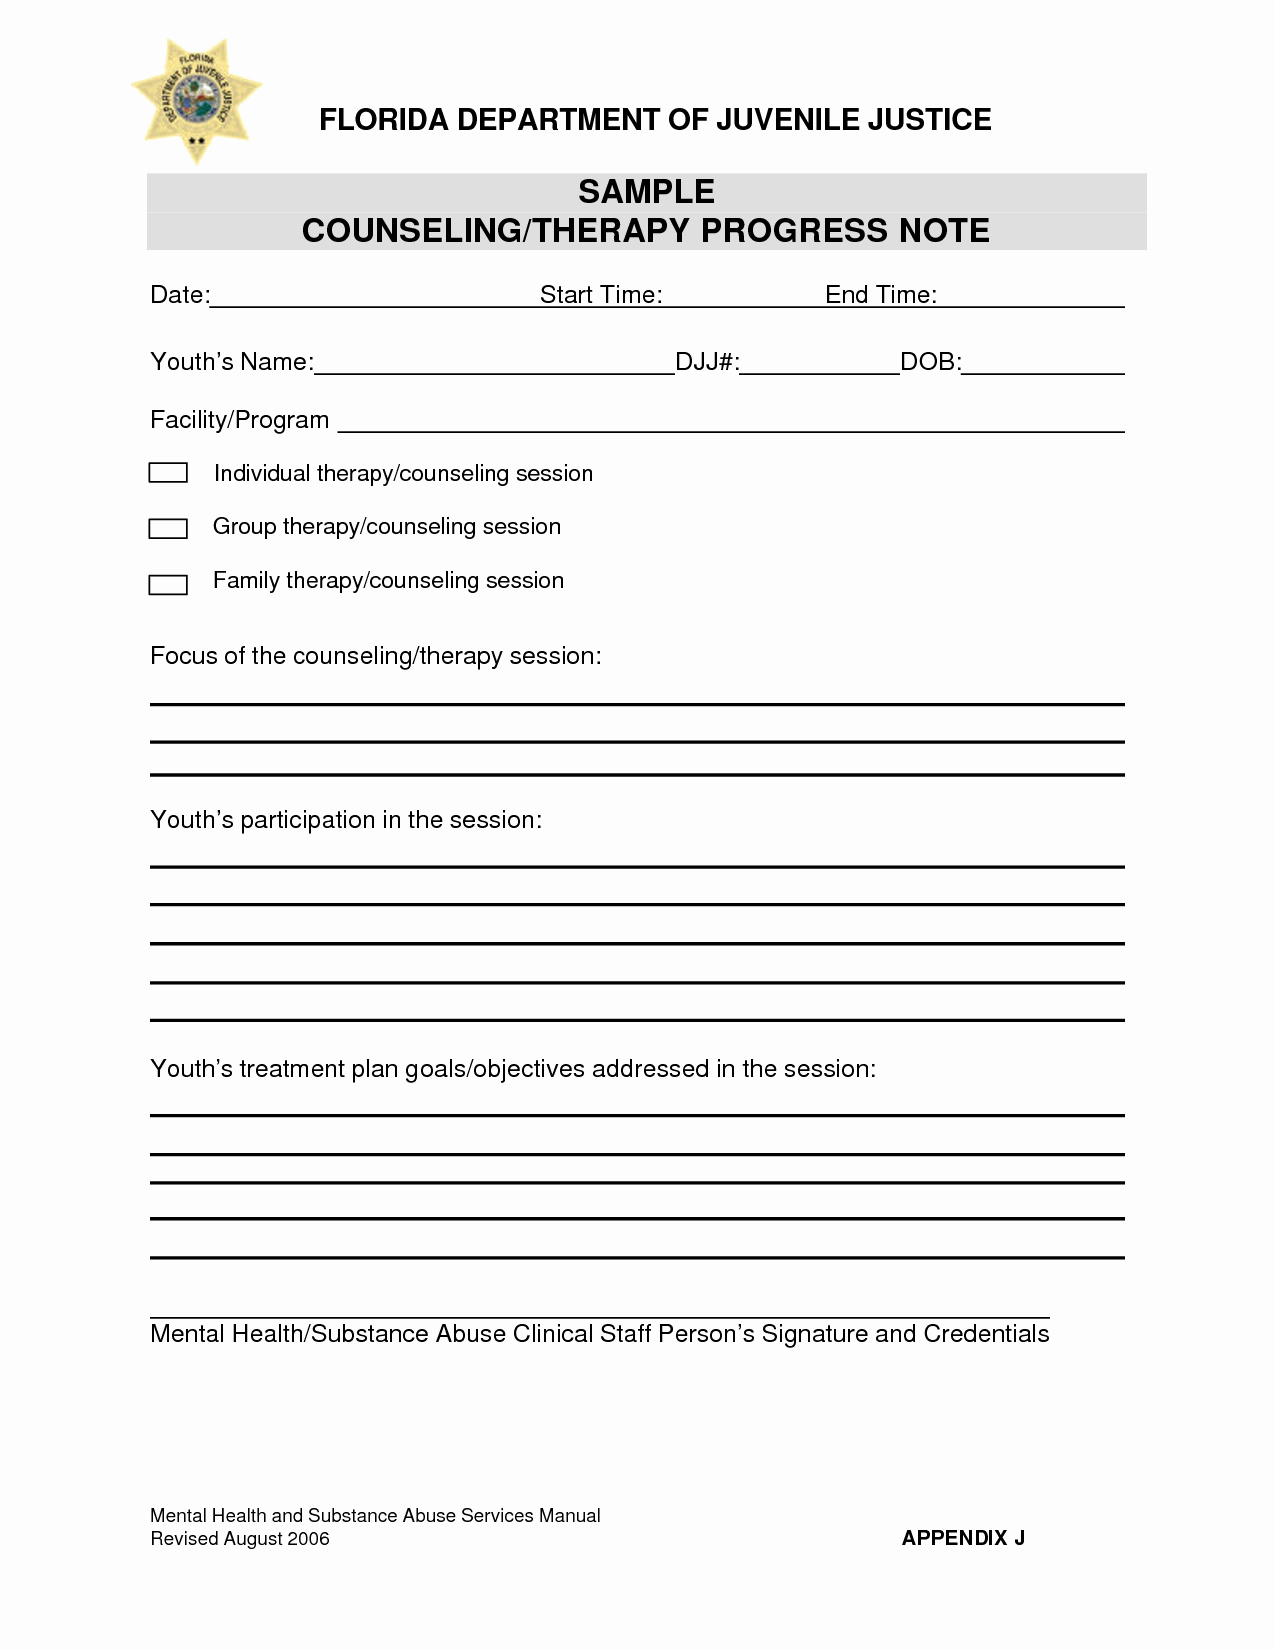 Counseling Progress Note Template Unique 98 Group therapy Progress Note form therapy Progress